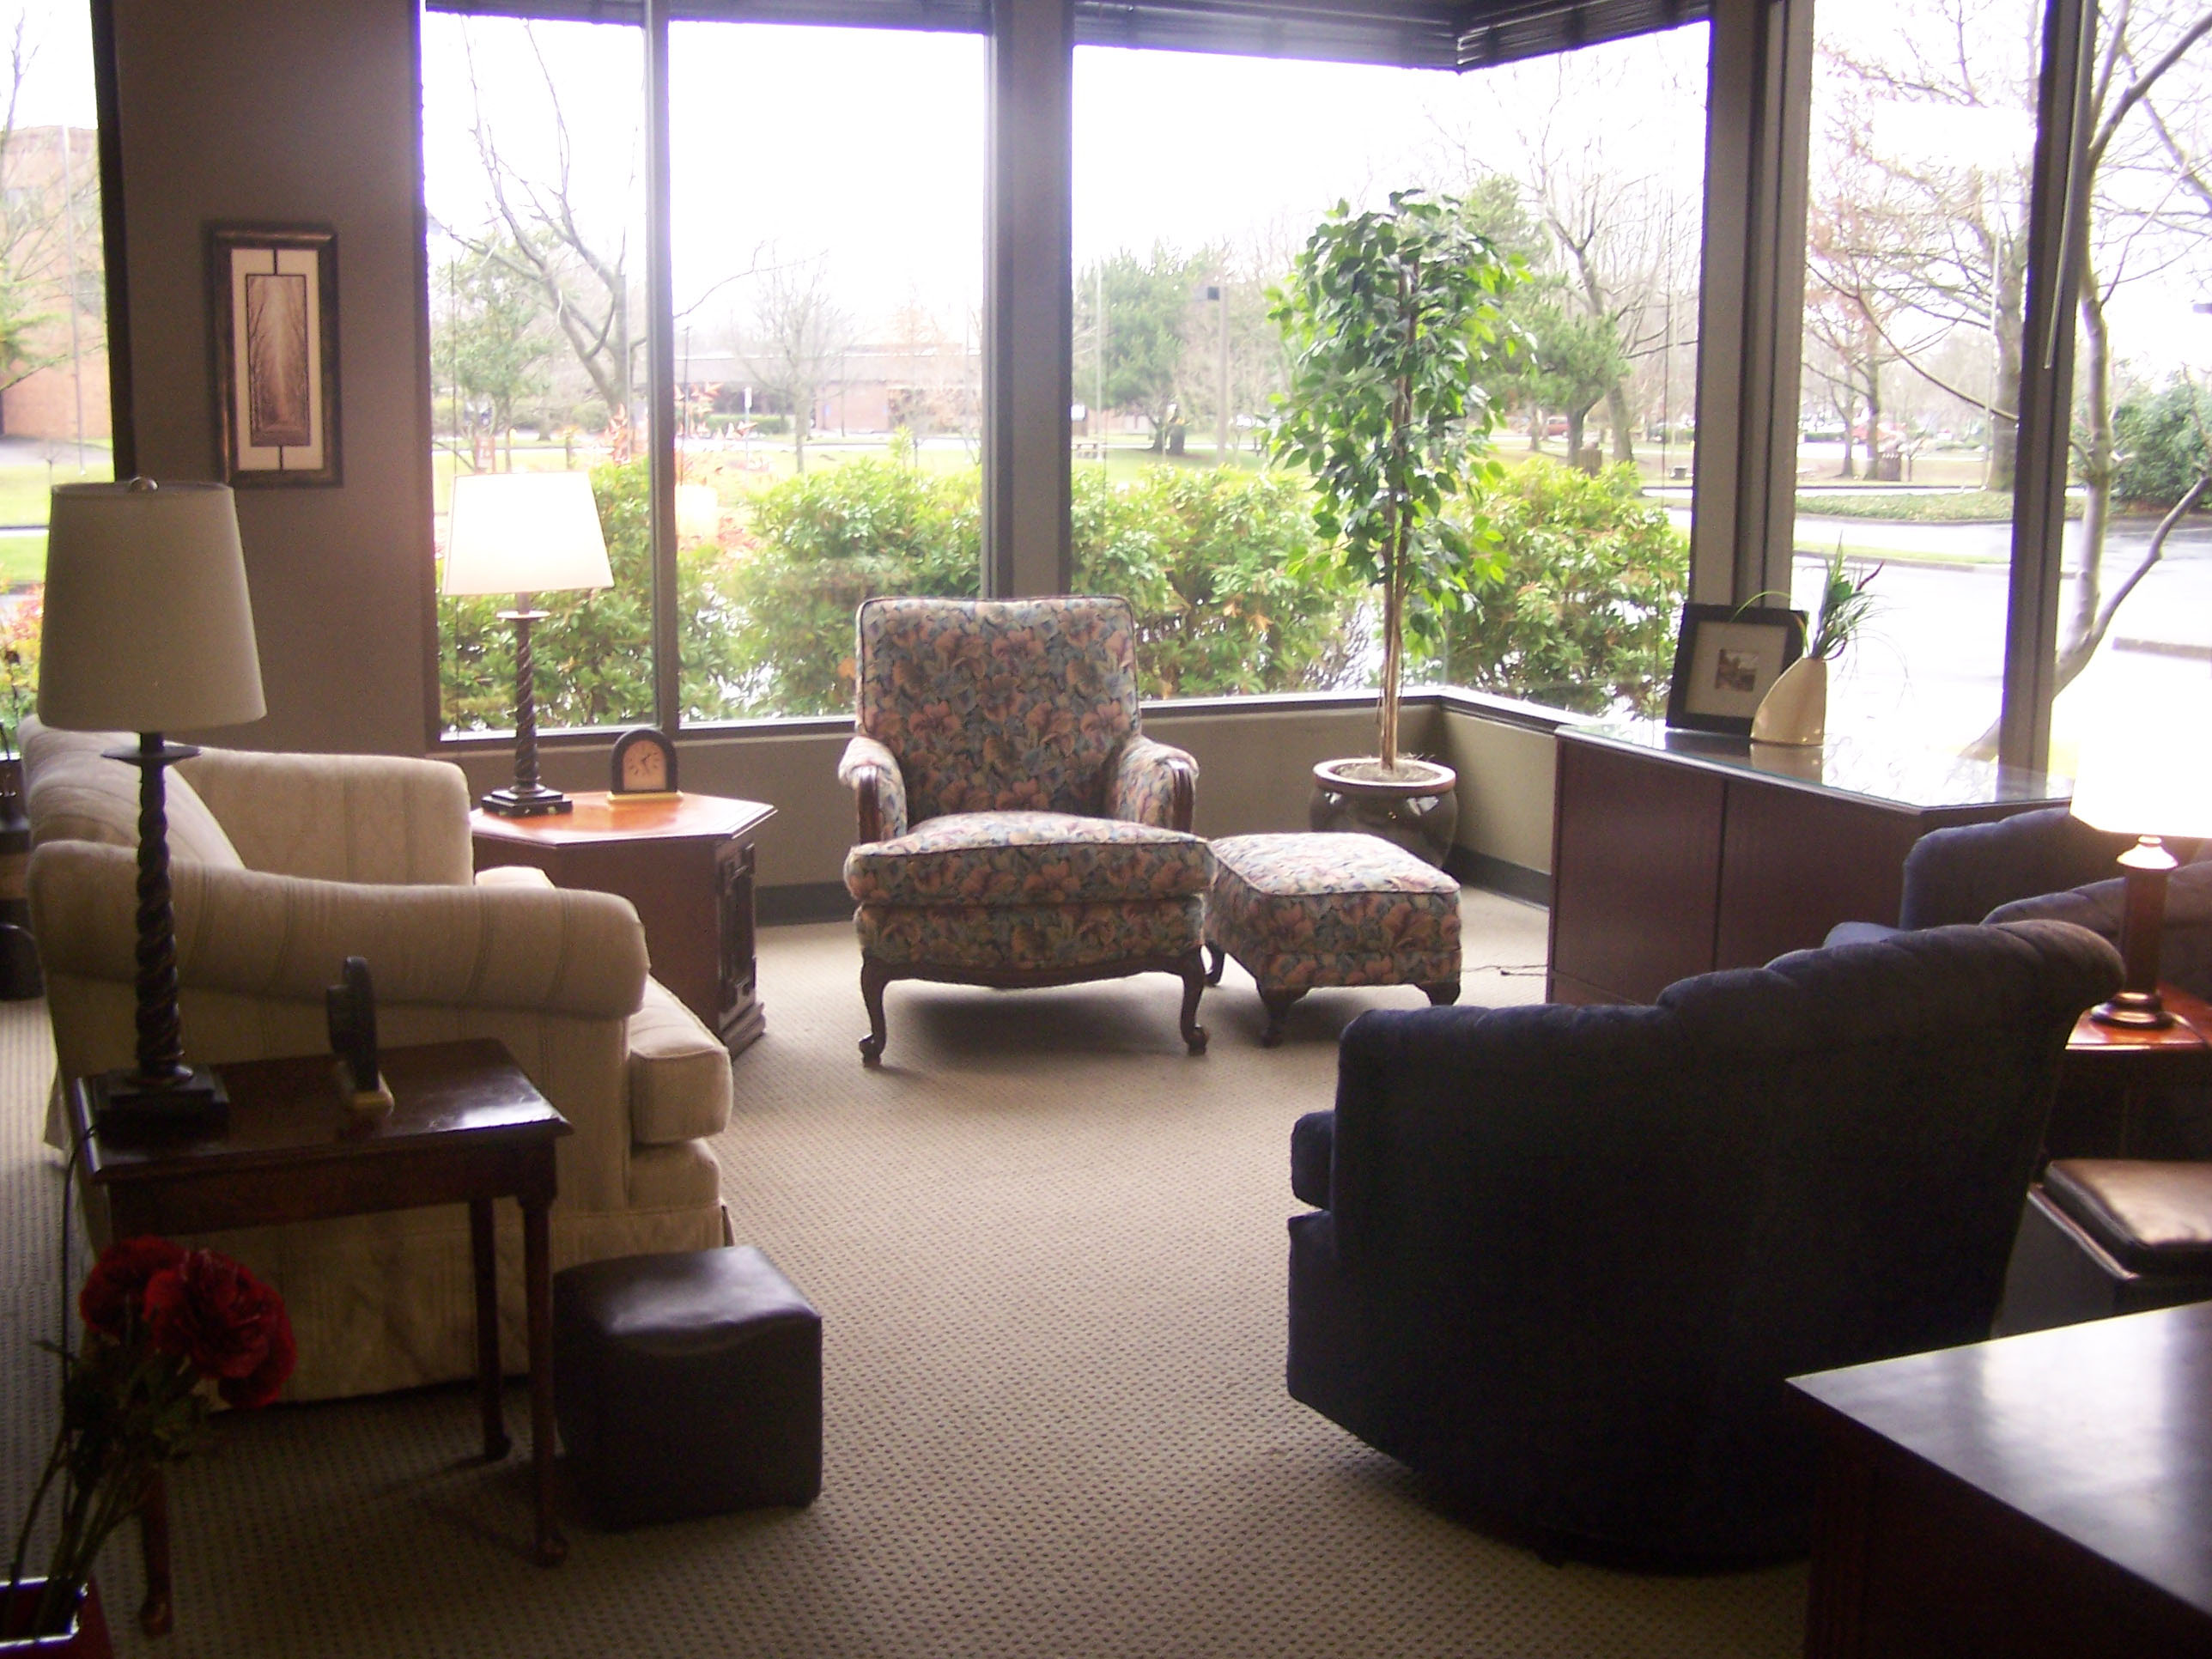 Home comfort design portland oregon awesome home for Home designers portland oregon